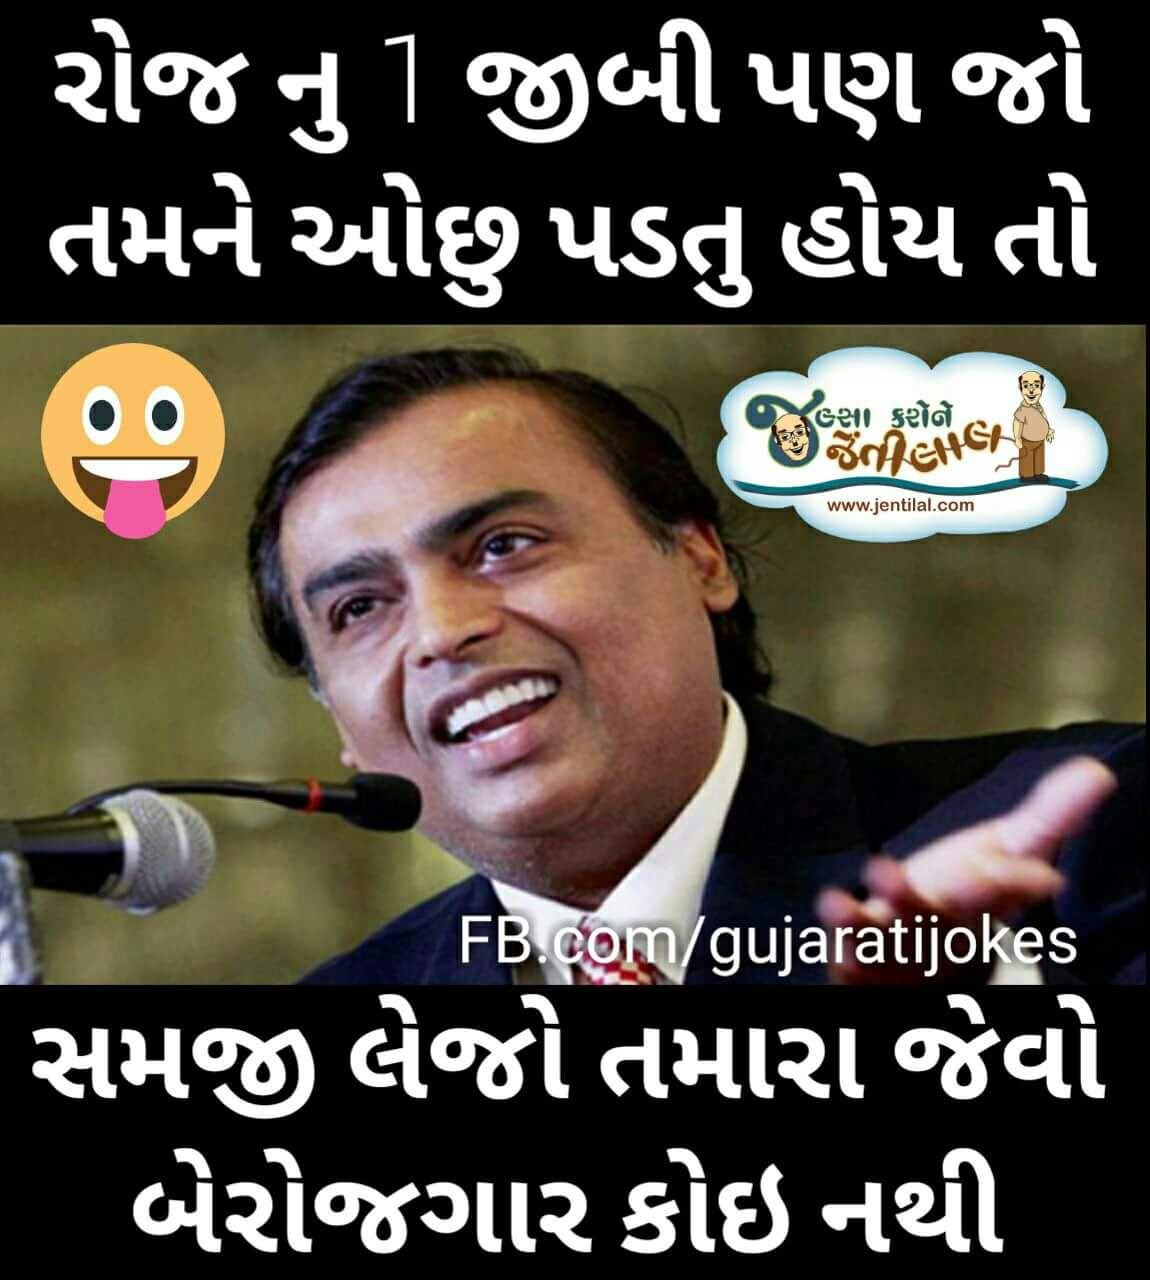 gujarati-jokes-picture-19.jpg